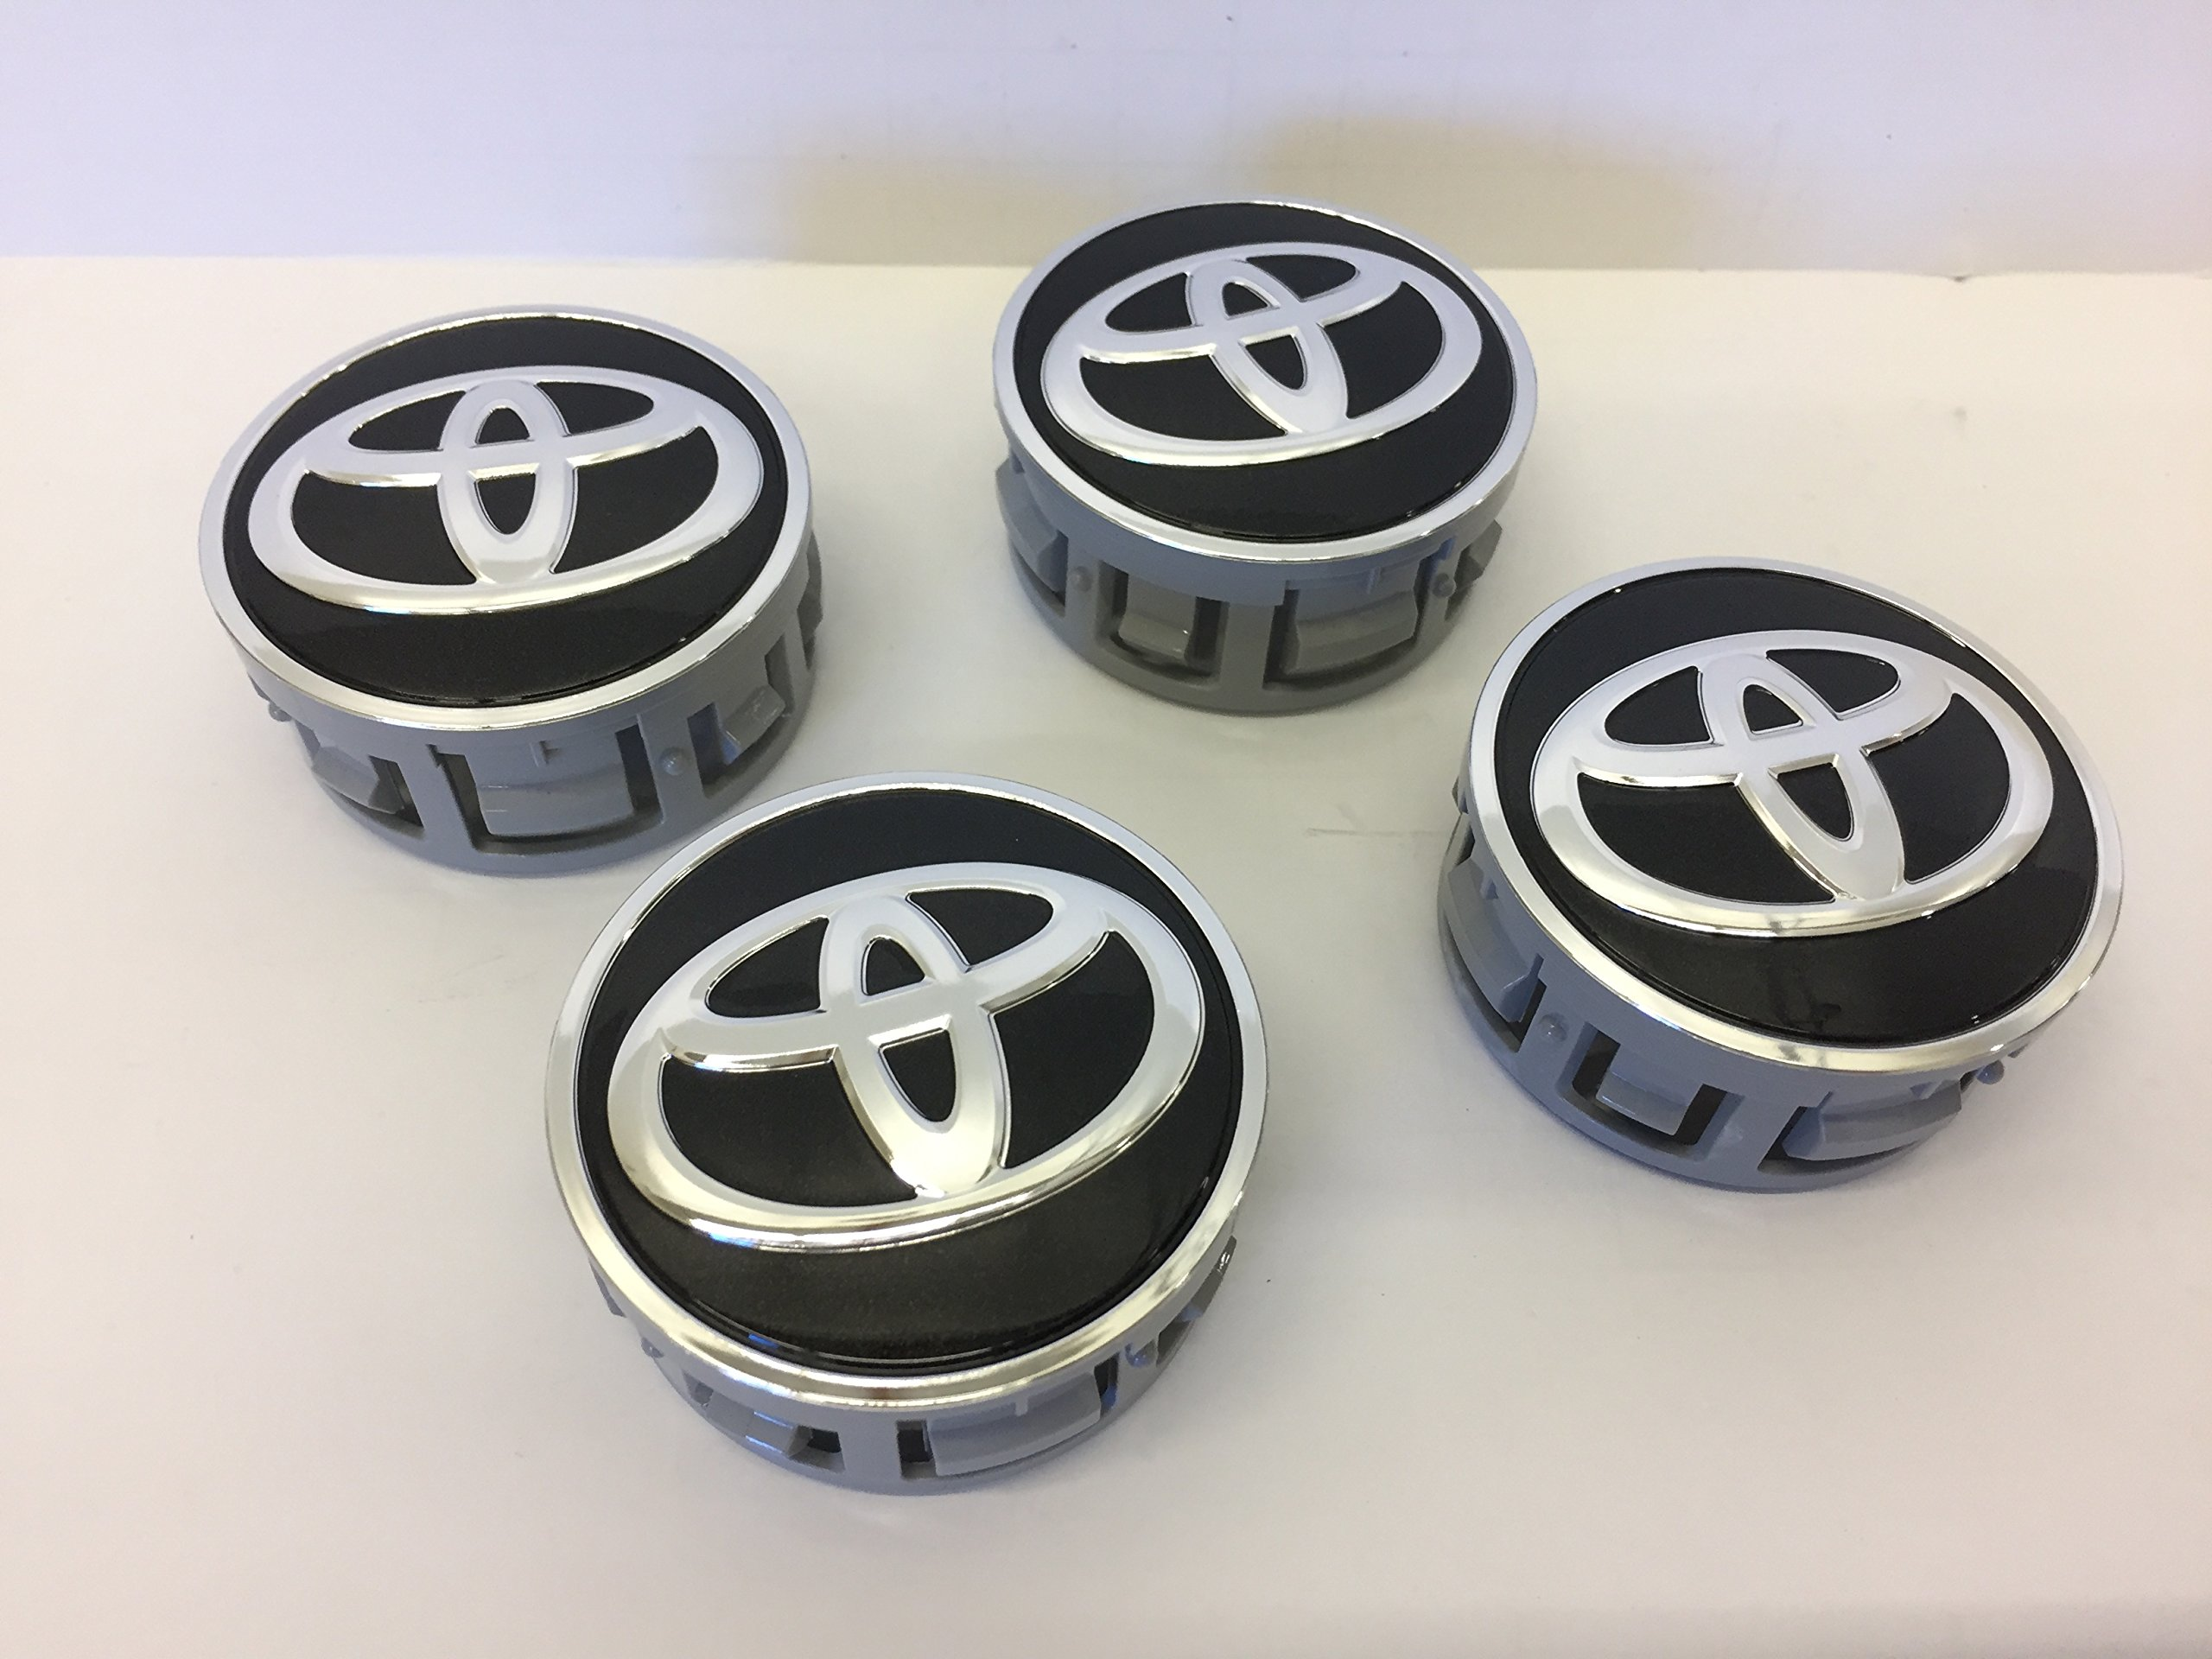 Genuine Toyota Prius Center Wheel Caps 42603-52170. Set of 4. 2016-2017 Prius.